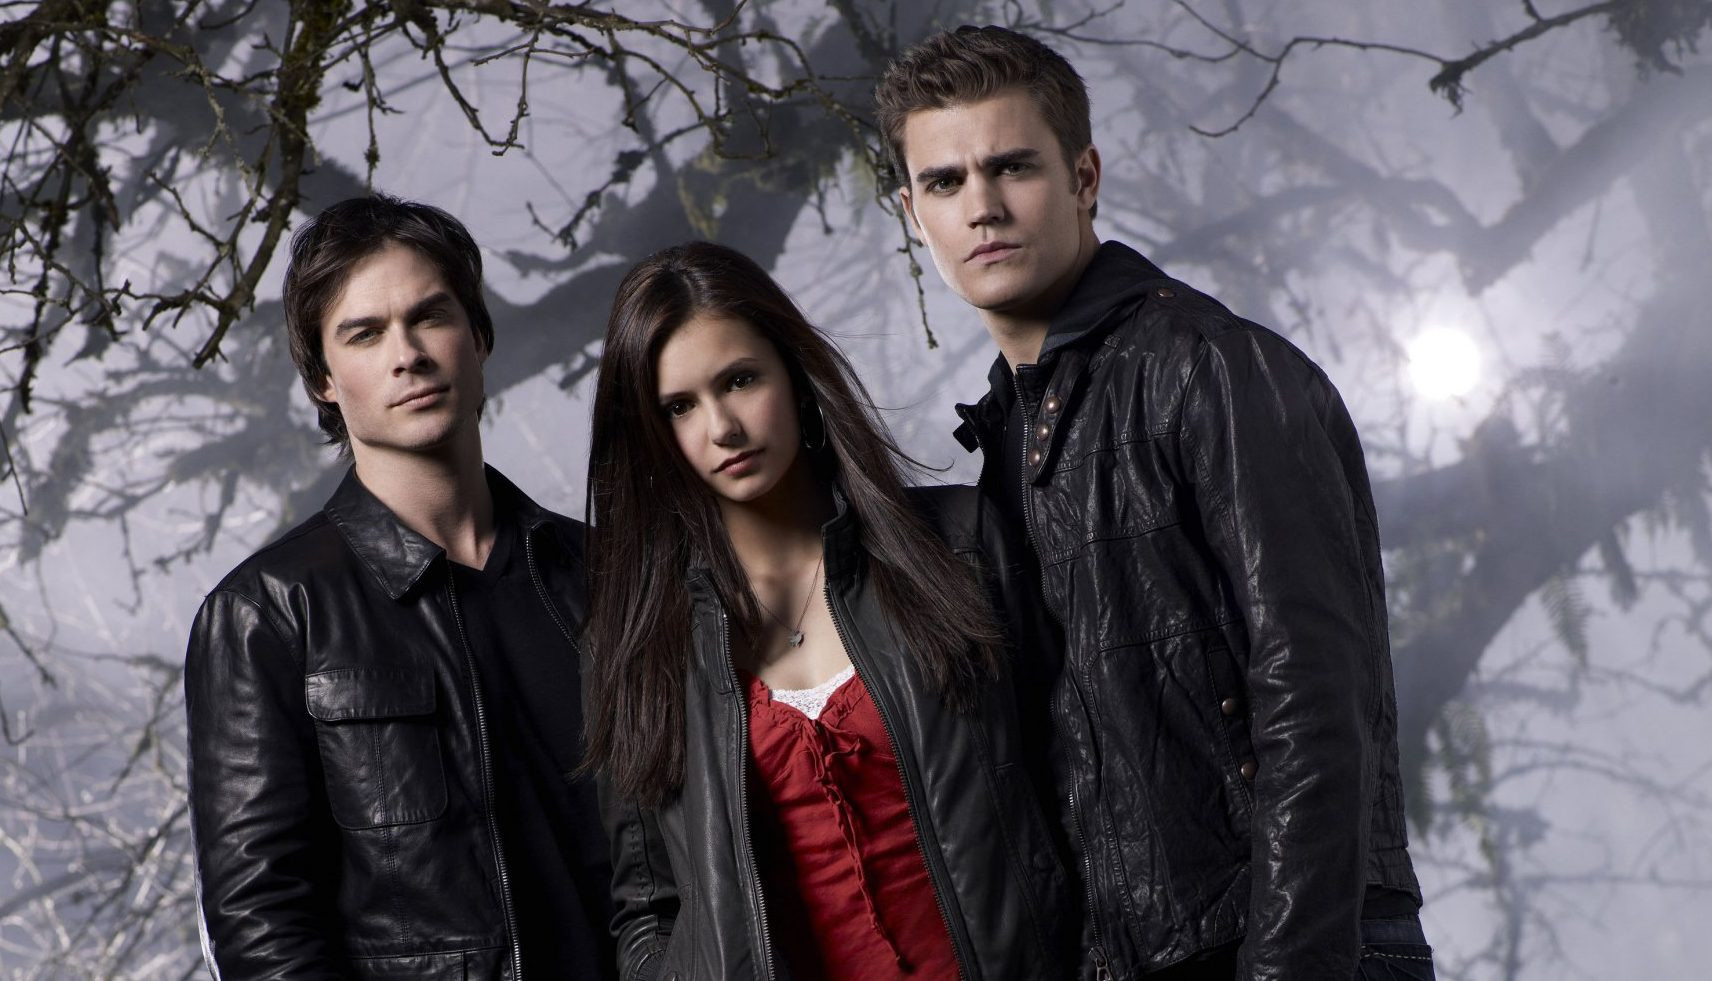 The Vampire Diaries is back on Netflix and fans are going wild: 'The best thing to happen in 2021'